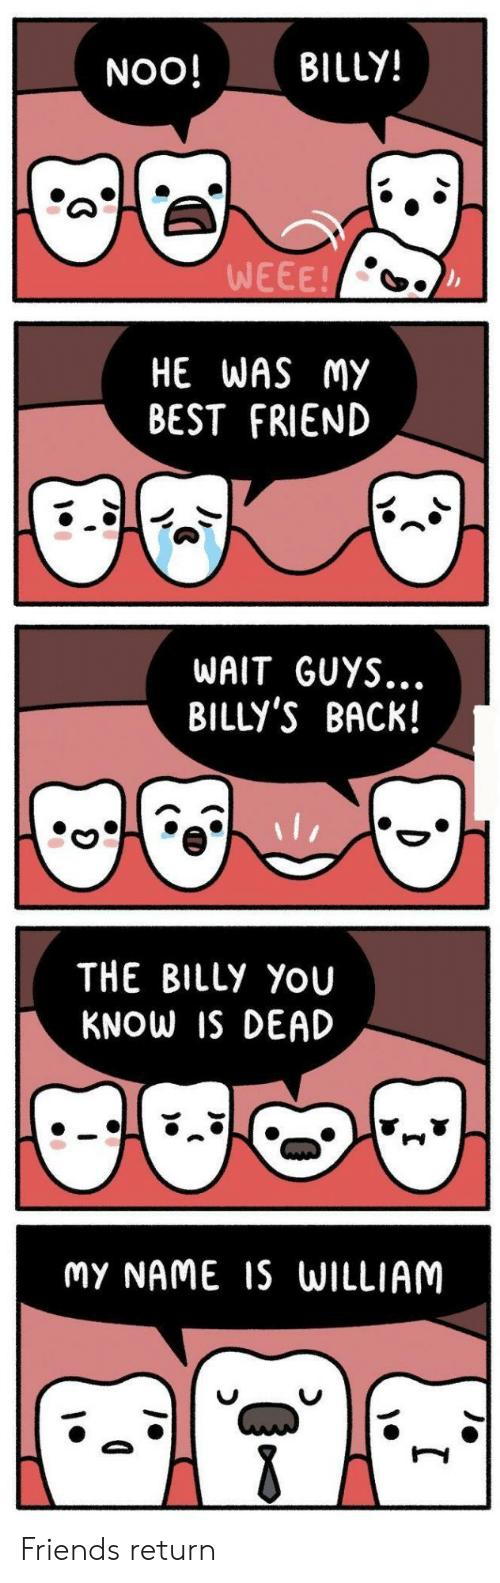 noo: NOO! BILLY!  WEEE!  HE WAS MY  BEST FRIEND  WAIT GUYS...  BILLY'S BACK!  THE BILLy YoU  KNOW IS DEAD  MY NAME IS WILLIAM Friends return